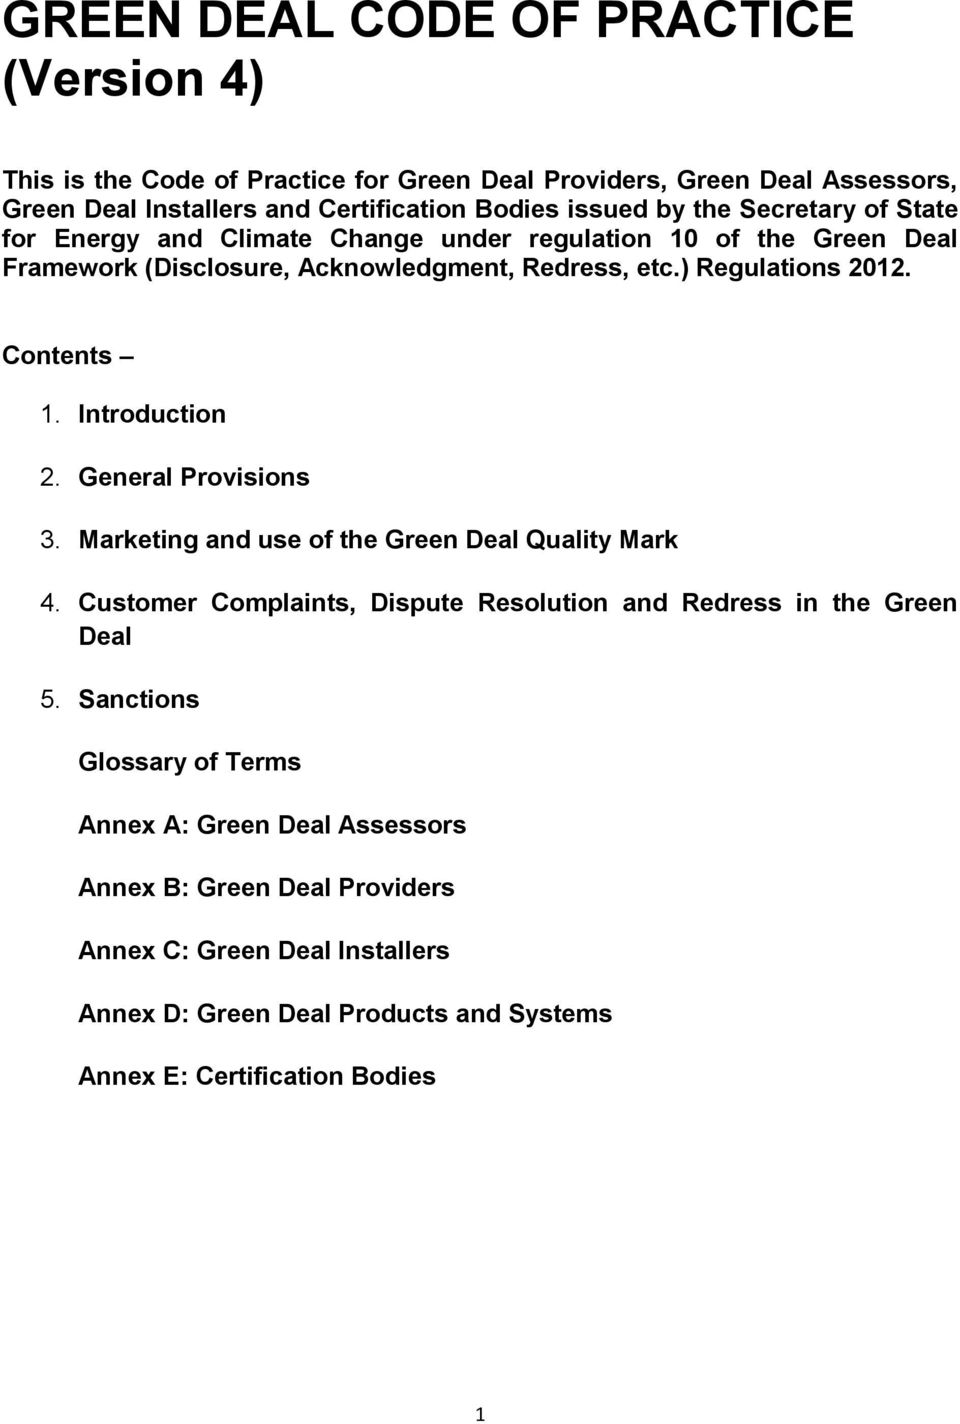 Introduction 2. General Provisions 3. Marketing and use of the Green Deal Quality Mark 4. Customer Complaints, Dispute Resolution and Redress in the Green Deal 5.